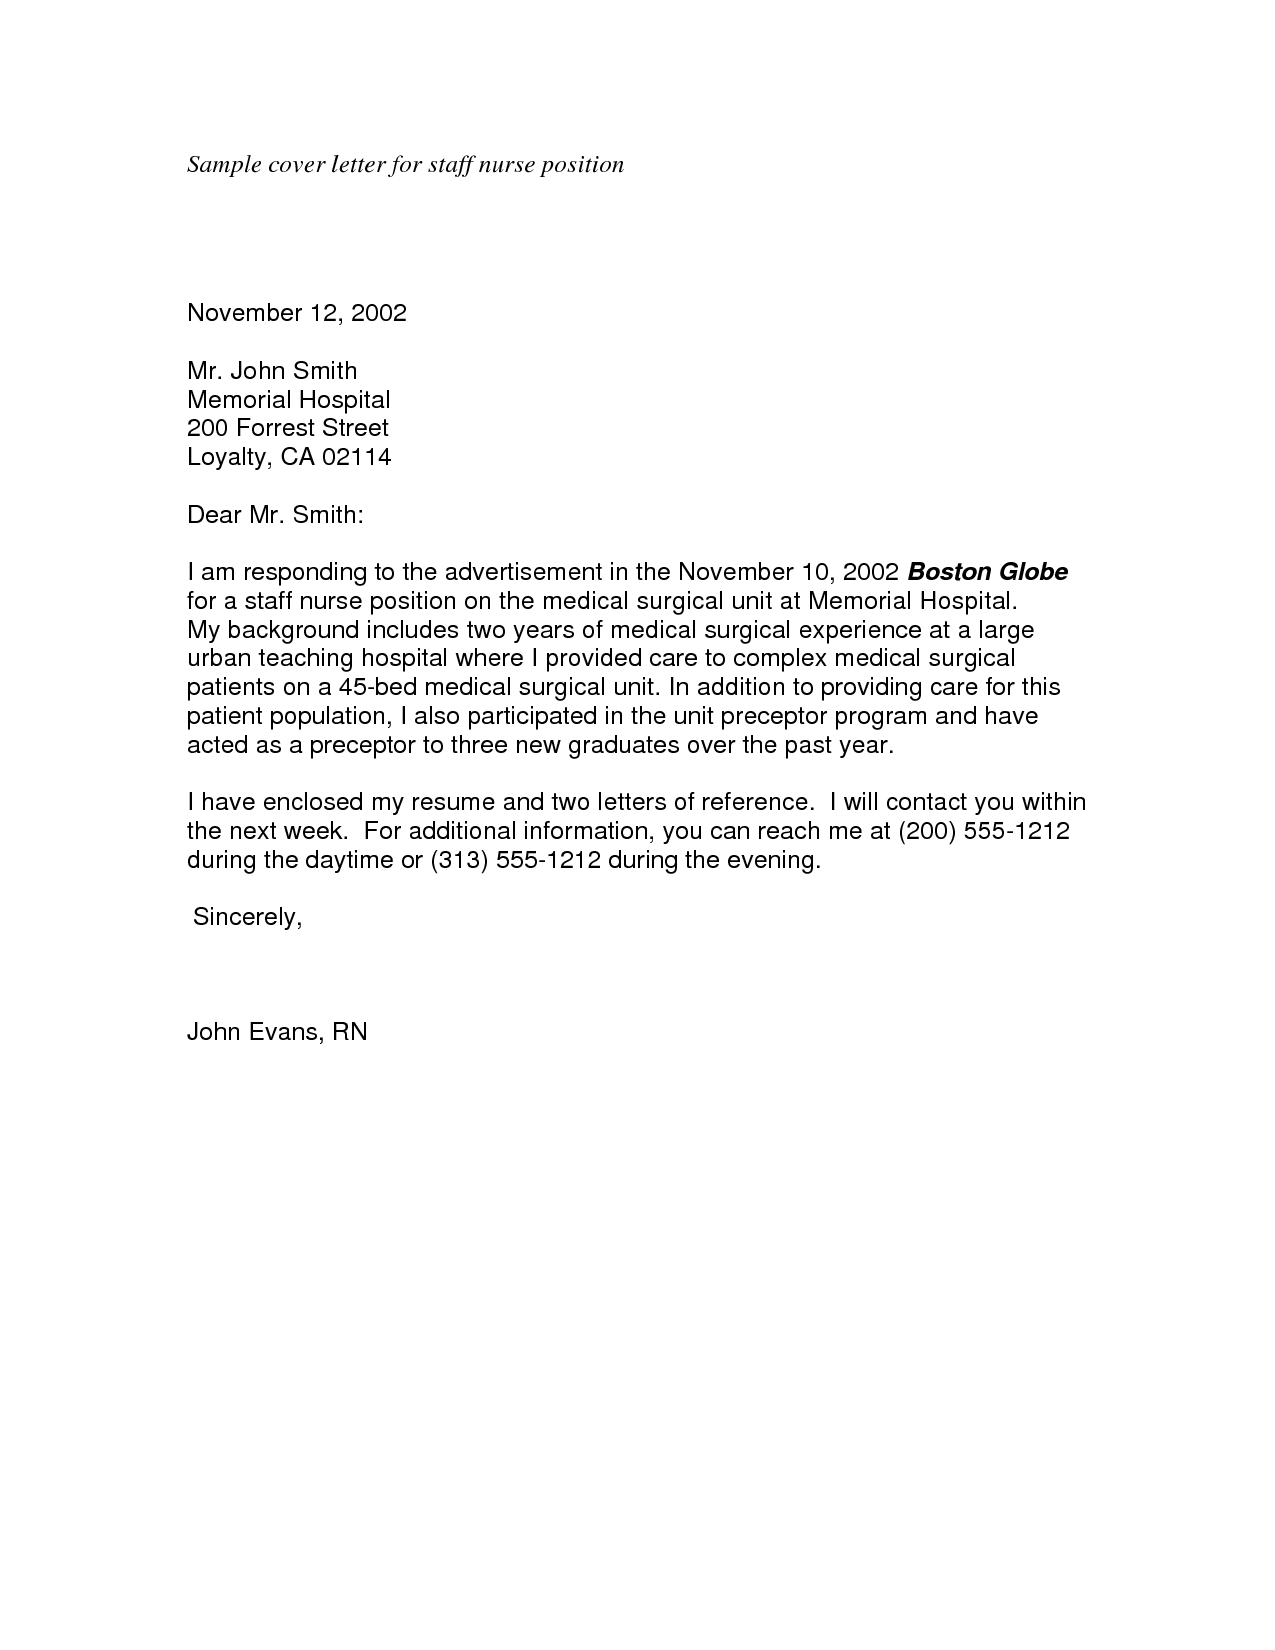 job application cover letter cover letter for job nursing cover letter